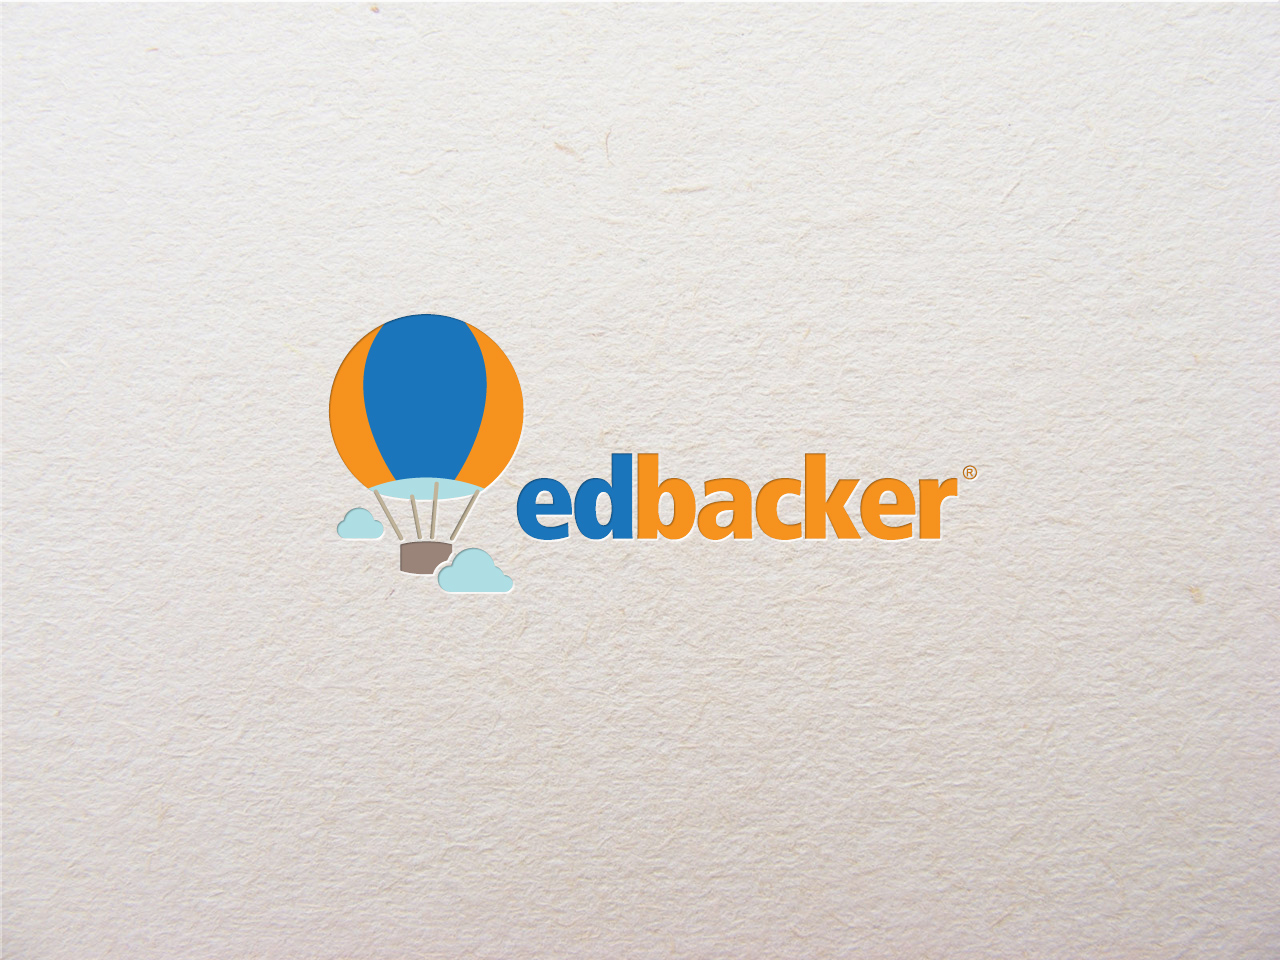 Logo Design by jpbituin - Entry No. 161 in the Logo Design Contest New Logo Design for edbacker.